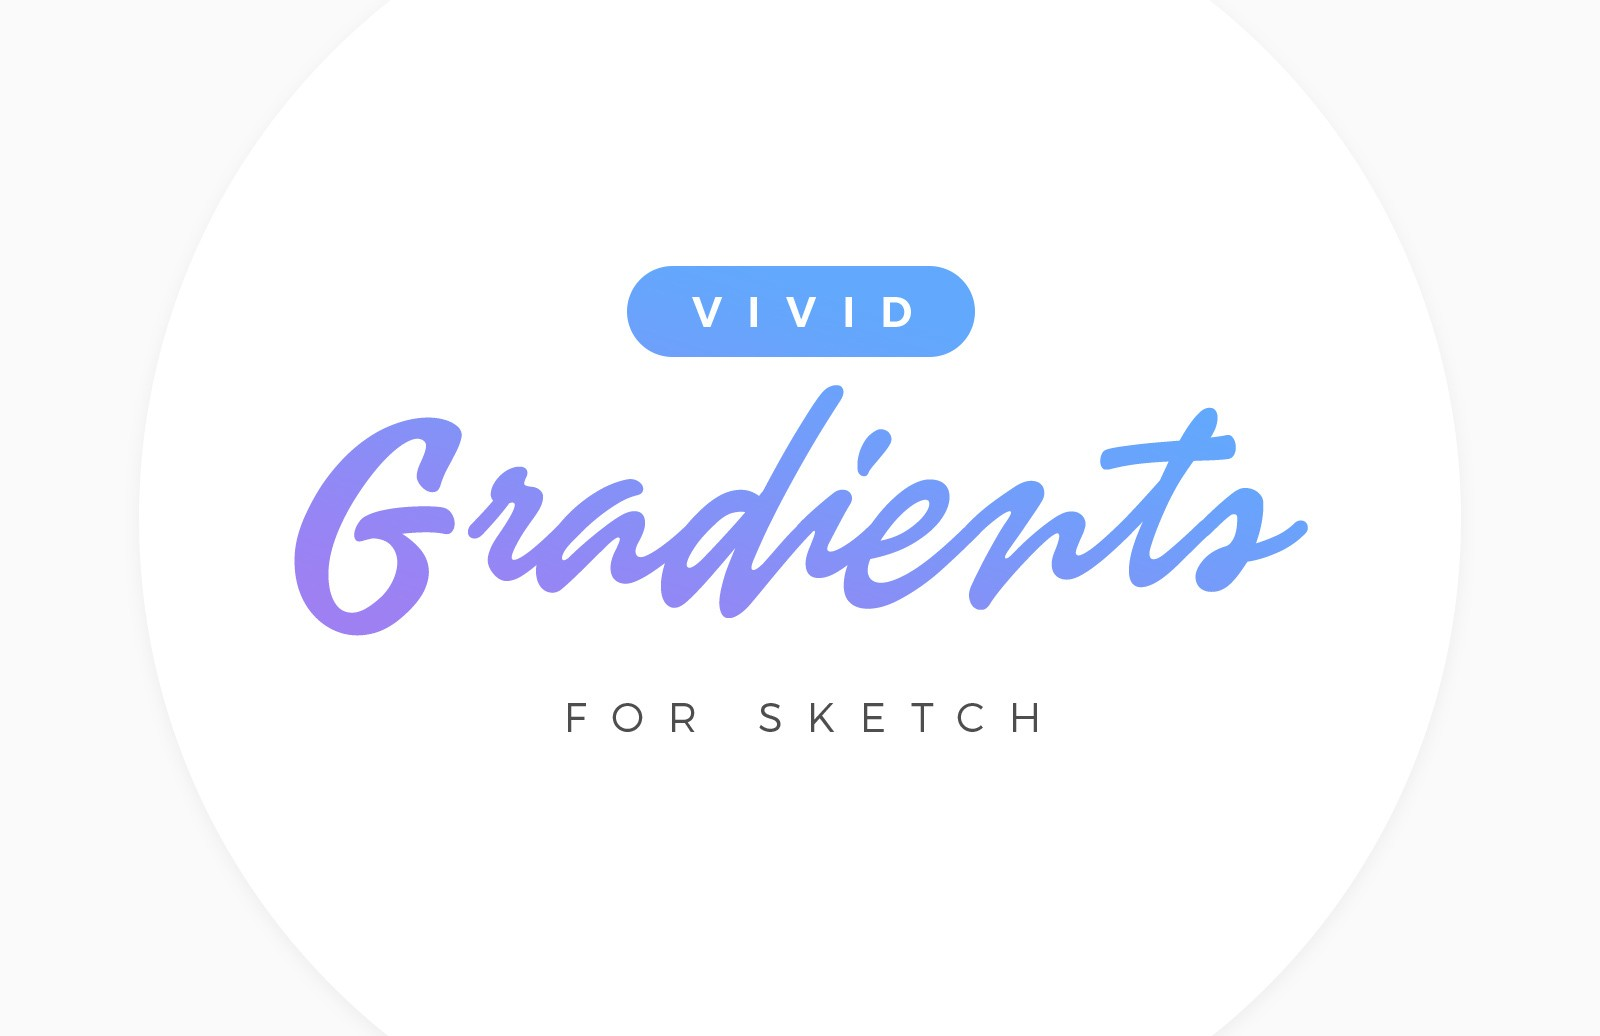 Vivid Gradients for Sketch